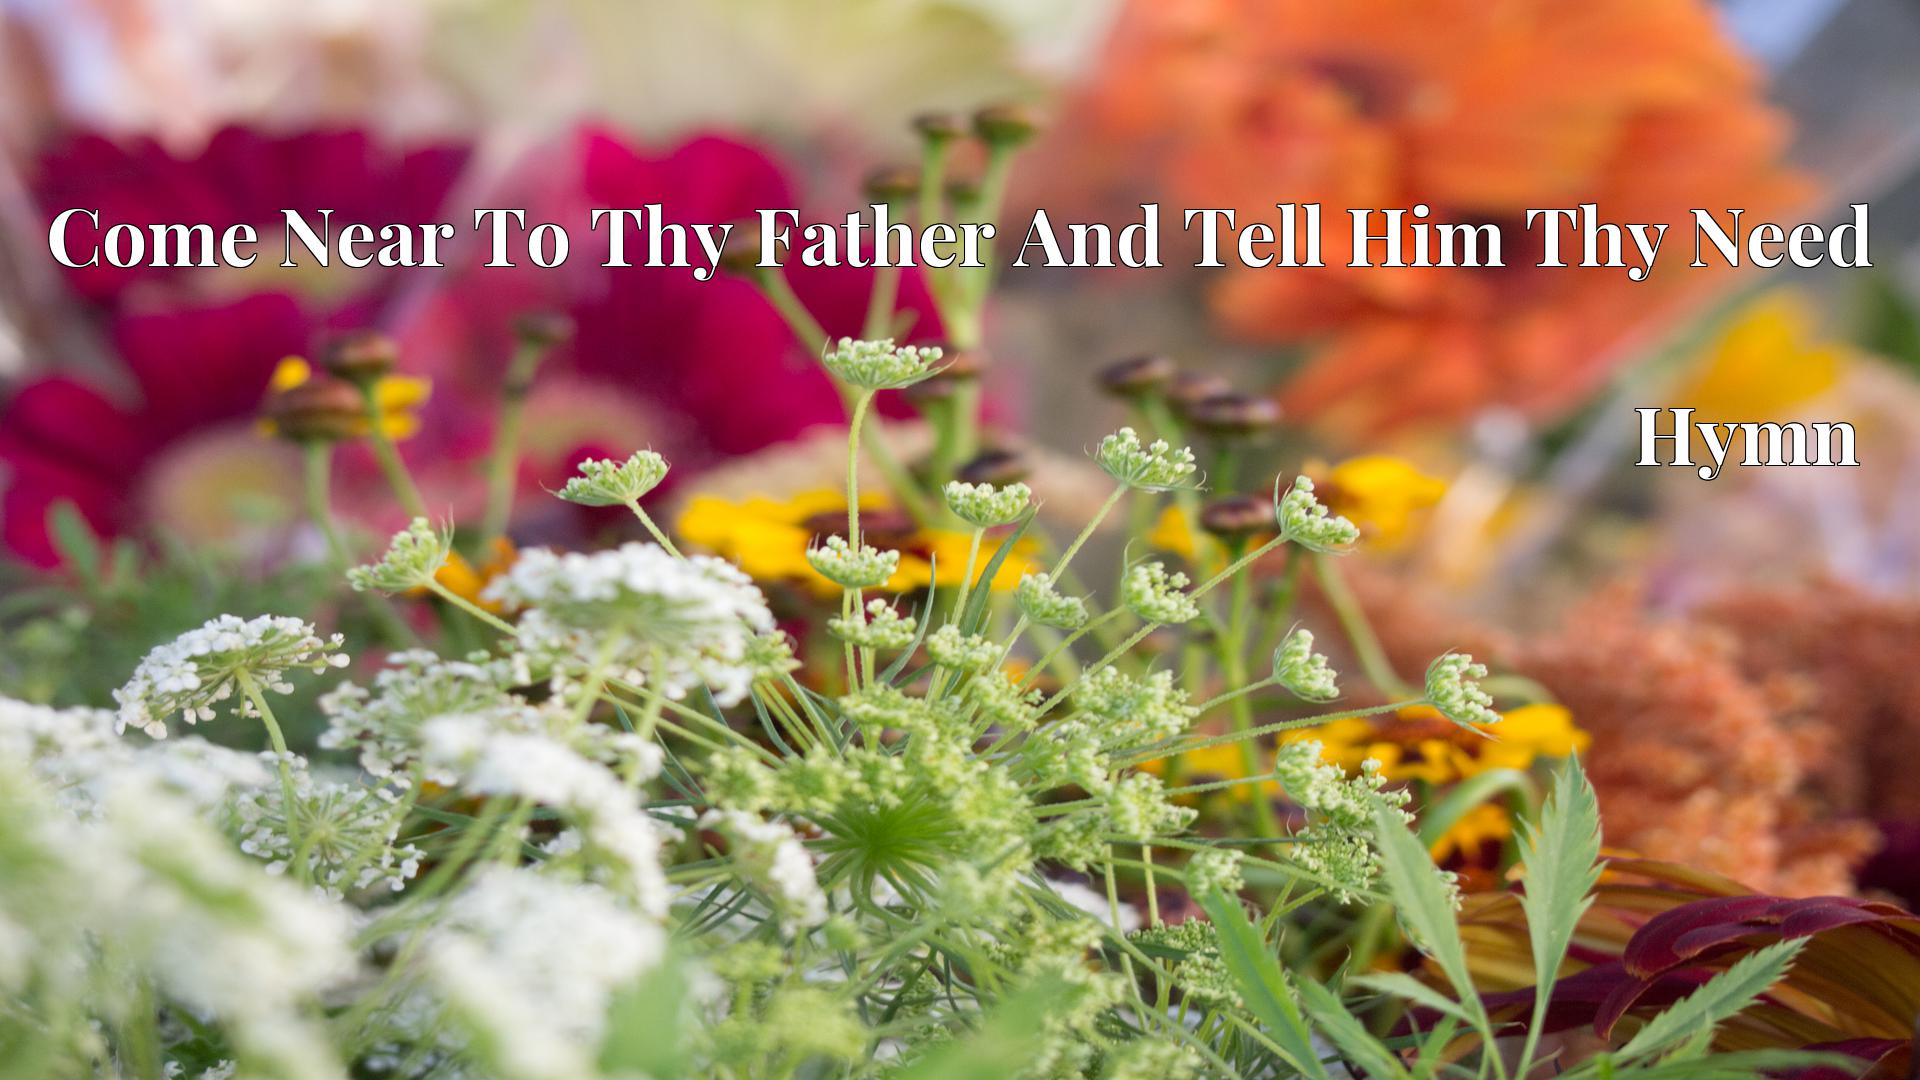 Come Near To Thy Father And Tell Him Thy Need - Hymn